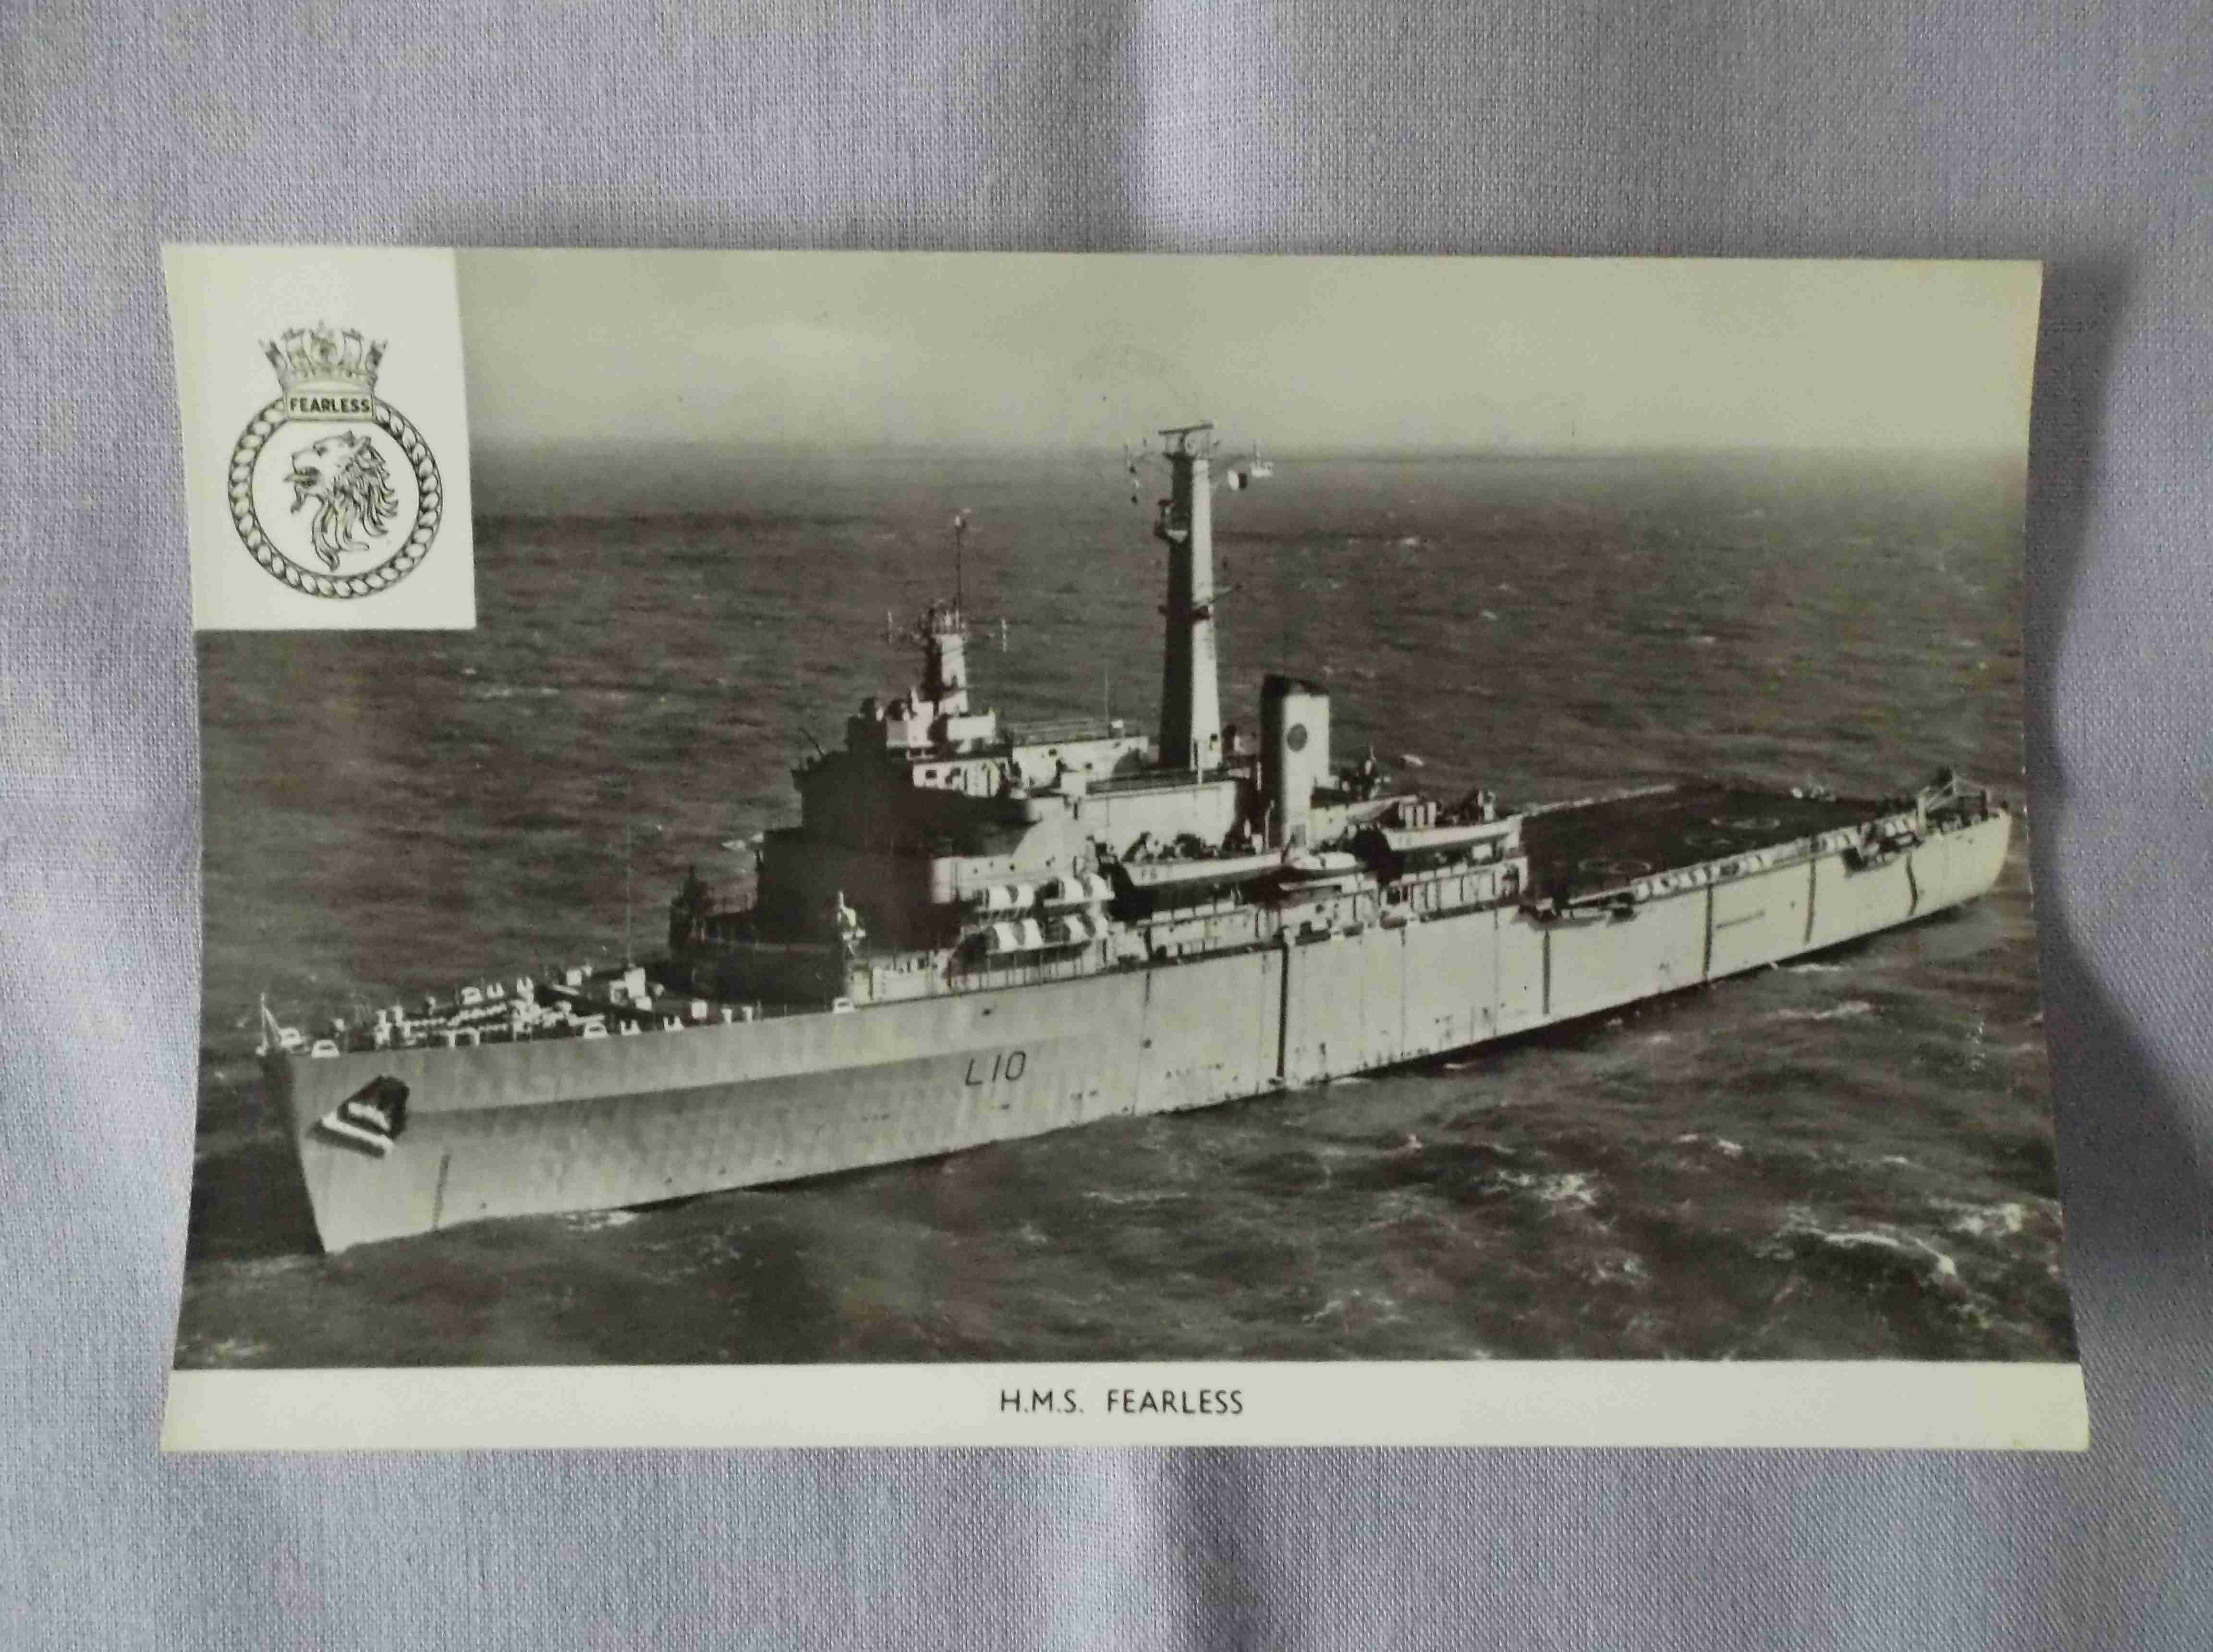 POSTCARD SIZE PHOTOGRAPH OF THE ROYAL NAVAL VESSEL HMS FEARLESS